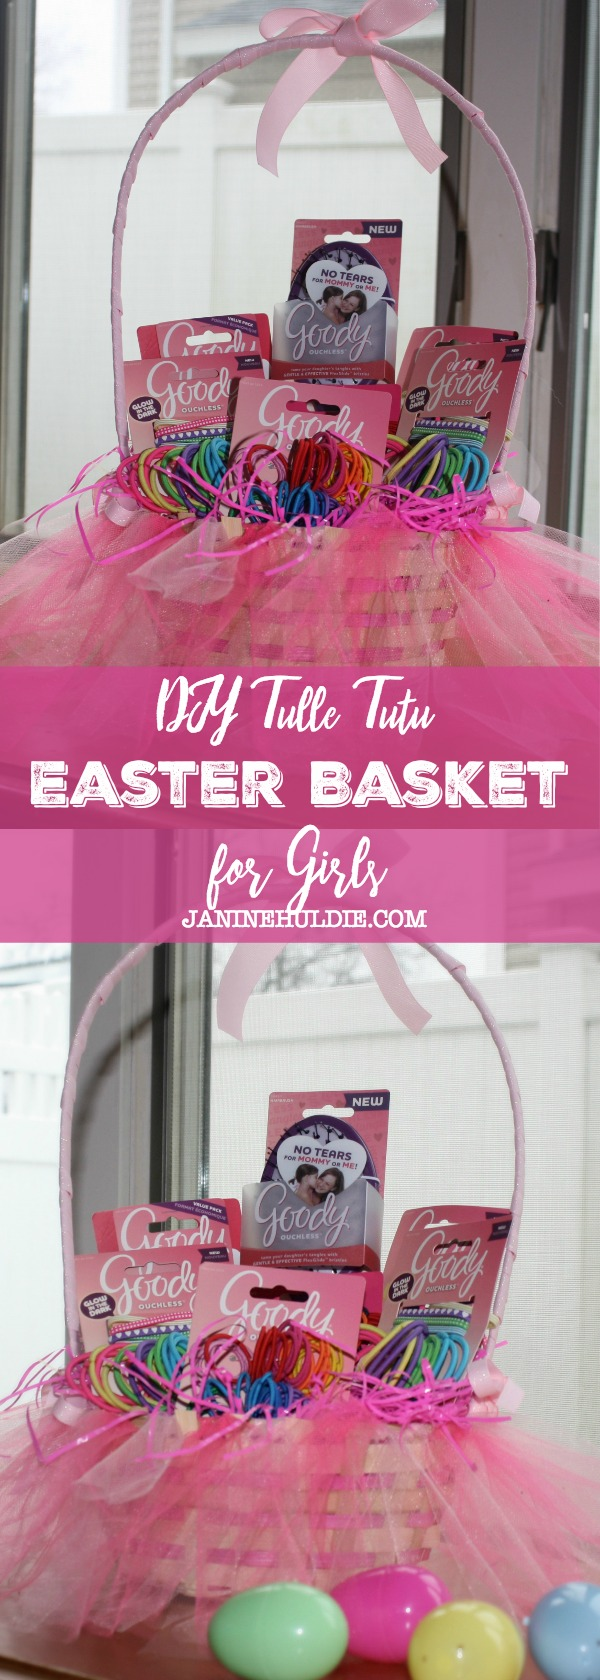 DIY Tulle Tutu Easter Basket for Girls